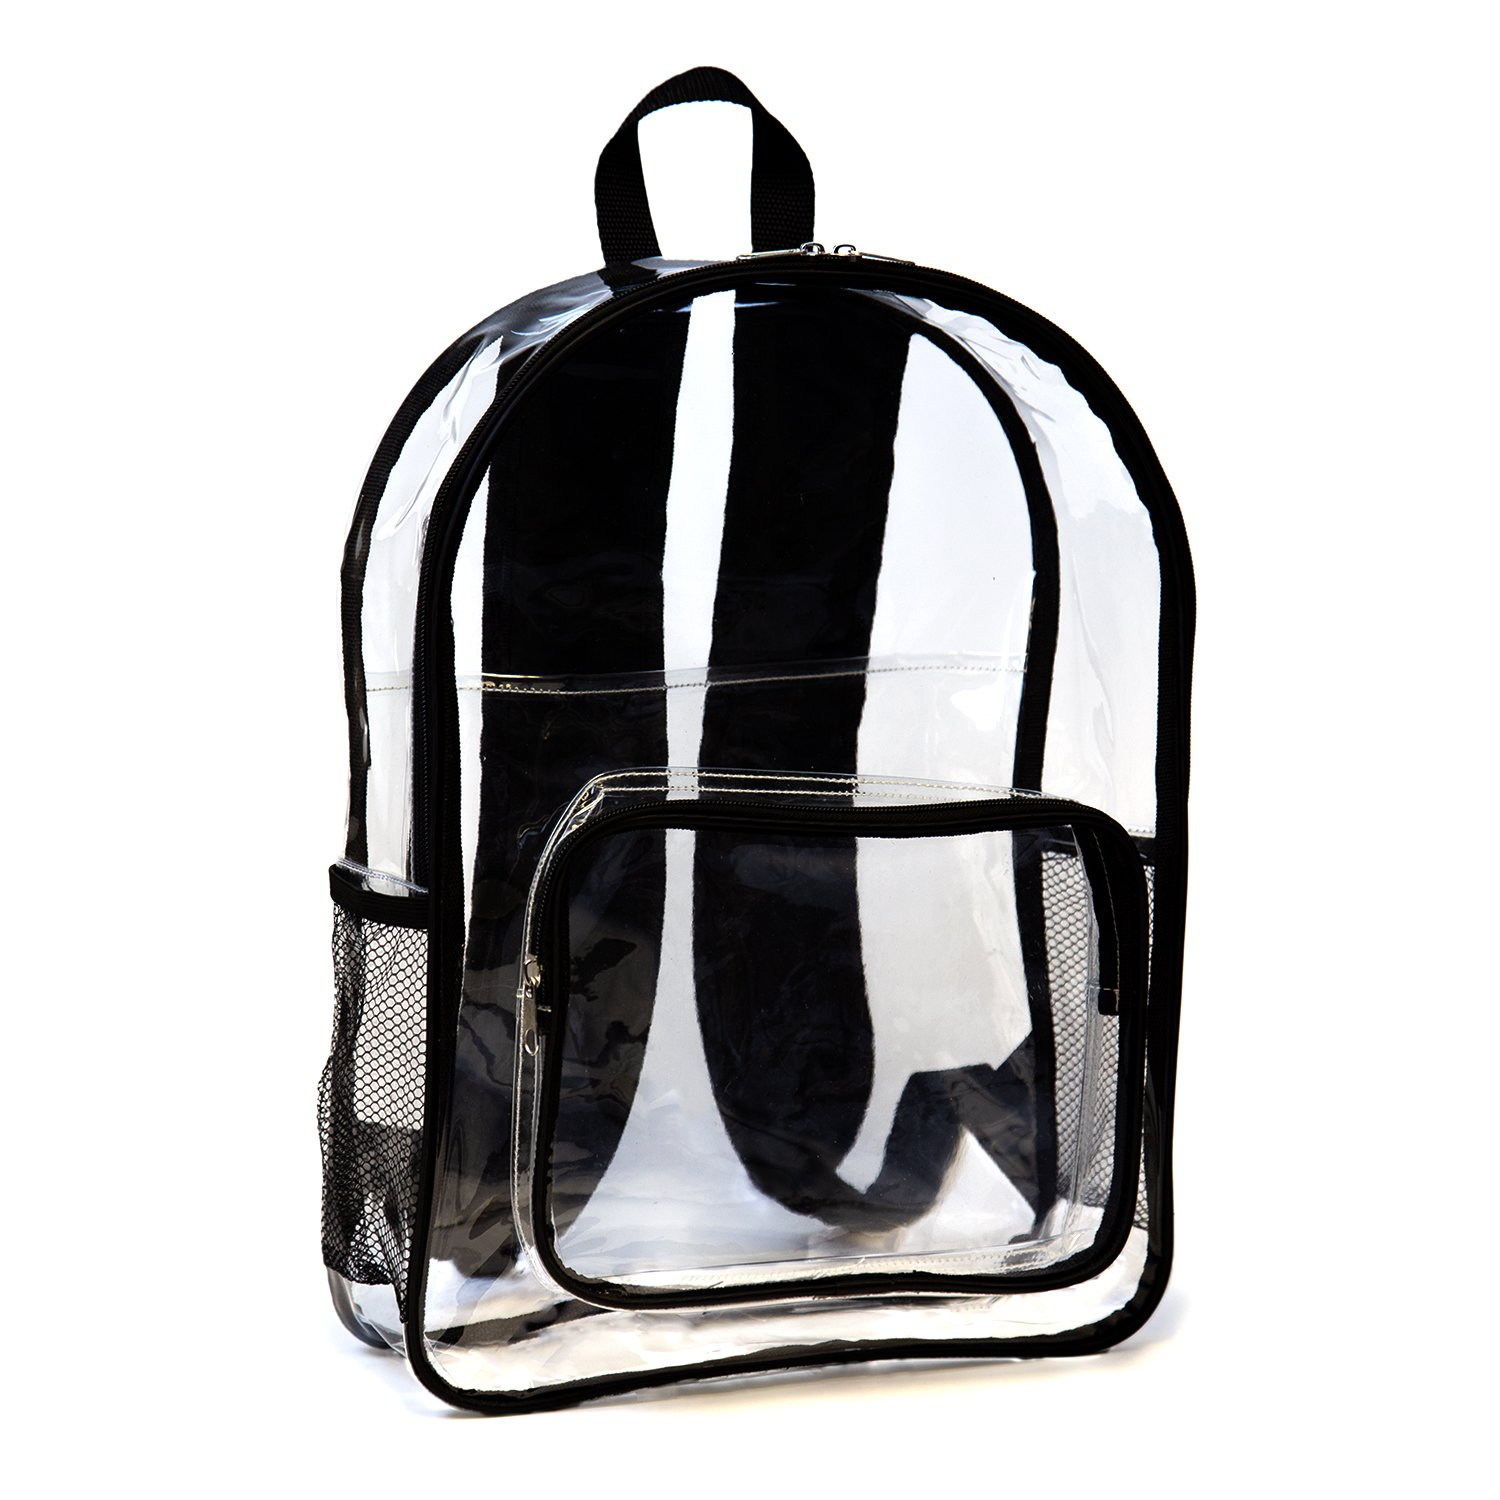 See Me - Clear Backpack with Laptop Sleeve by JumpOff Jo - Transparent, Heavy Duty Plastic Back Pack for Men, Women, and Kids - Improve Security at Work, Schools, Stadiums and Concerts